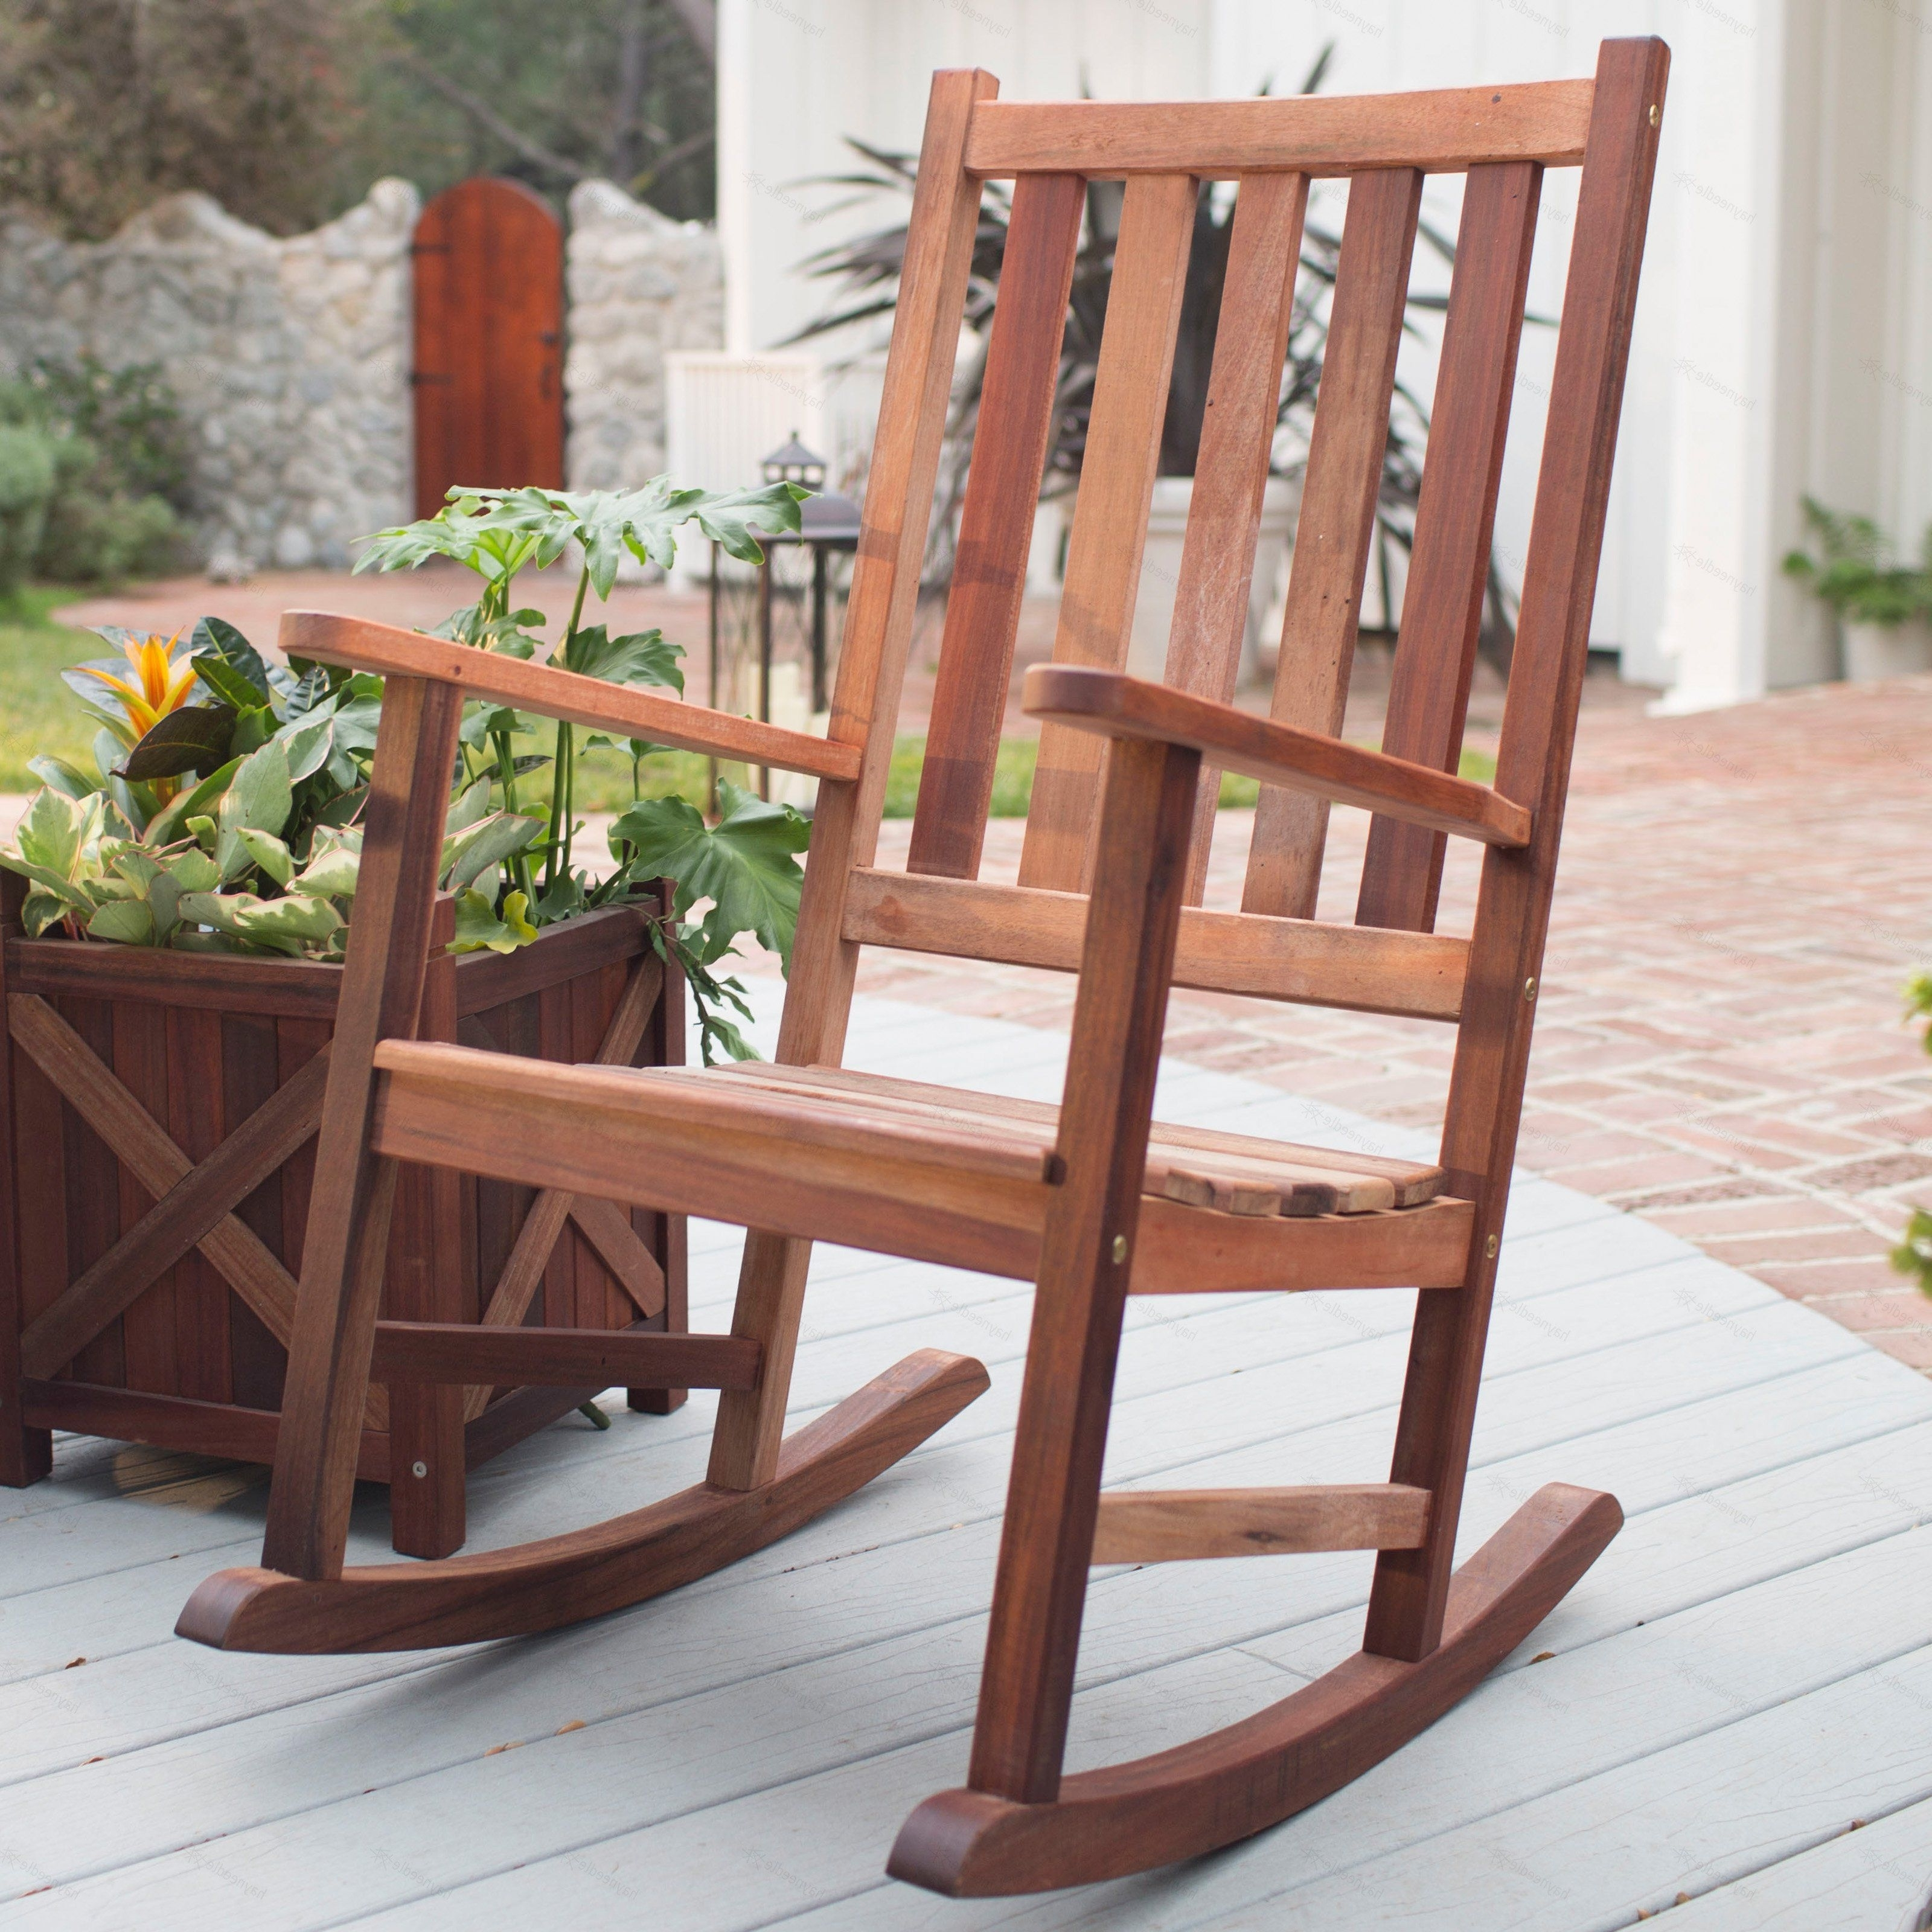 Latest Belham Living Richmond Heavy Duty Outdoor Wooden Rocking Chair Within Outdoor Rocking Chairs (View 4 of 20)